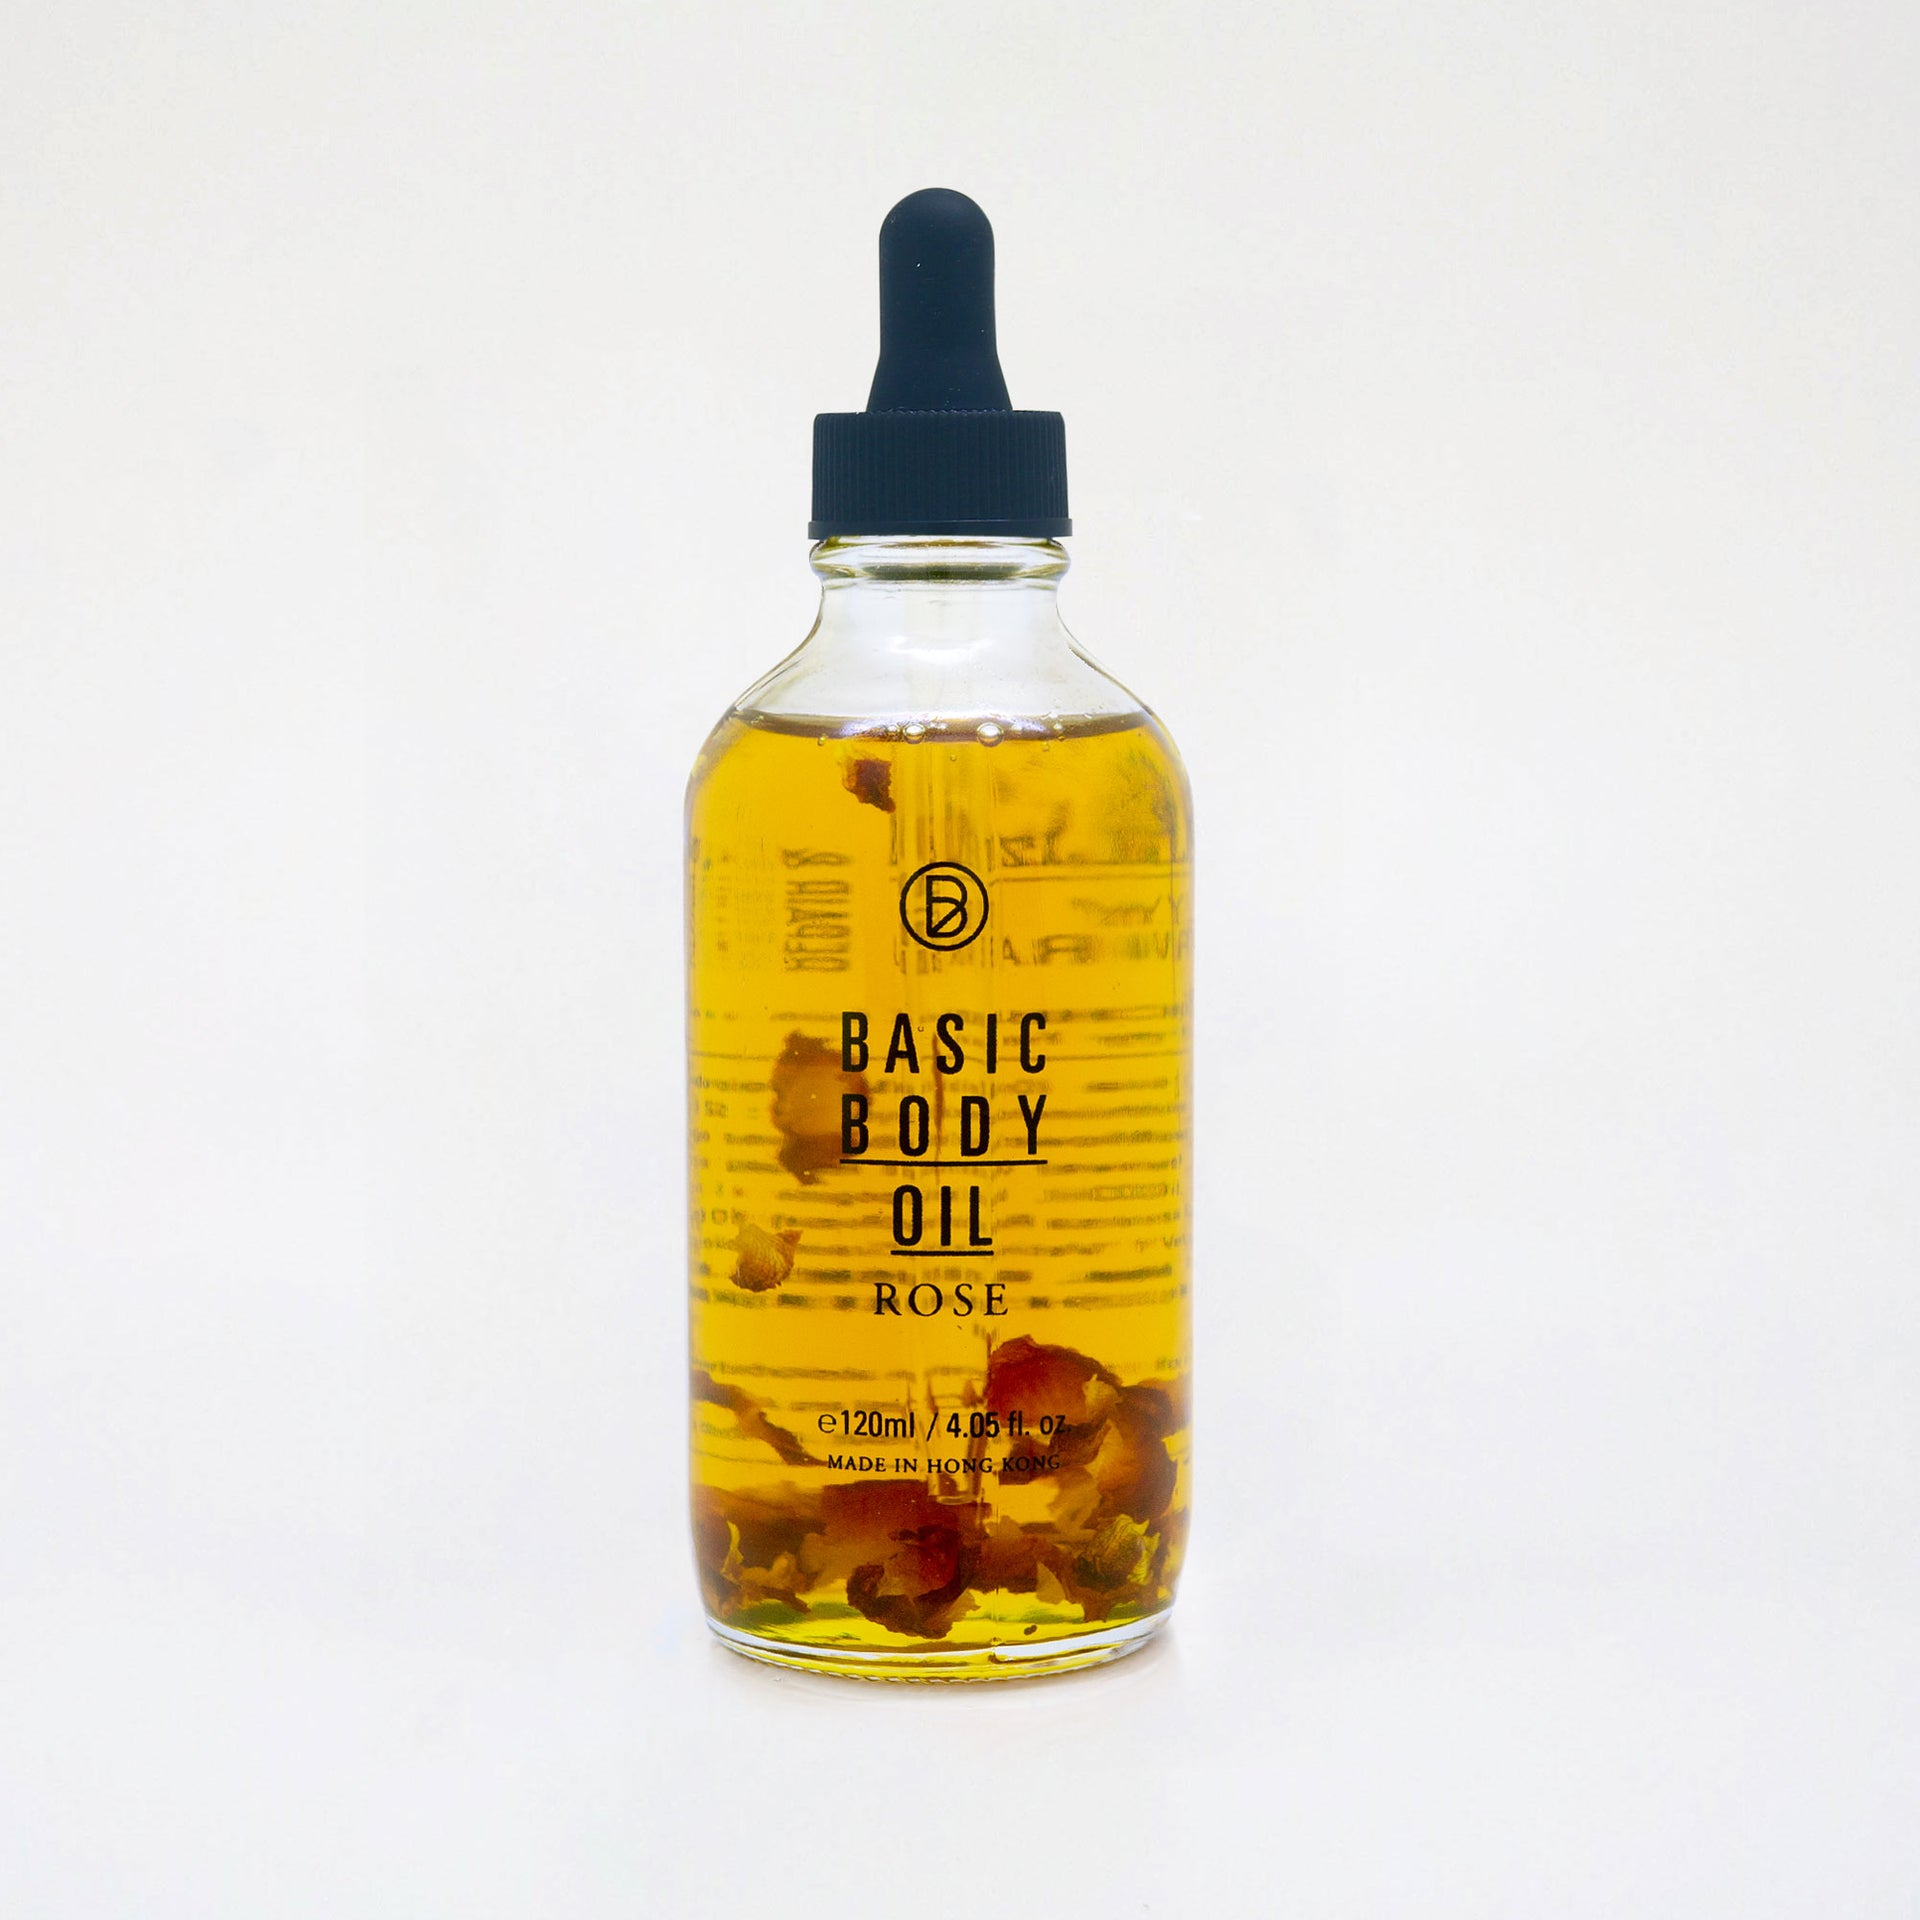 Basic Body Oil - Rose